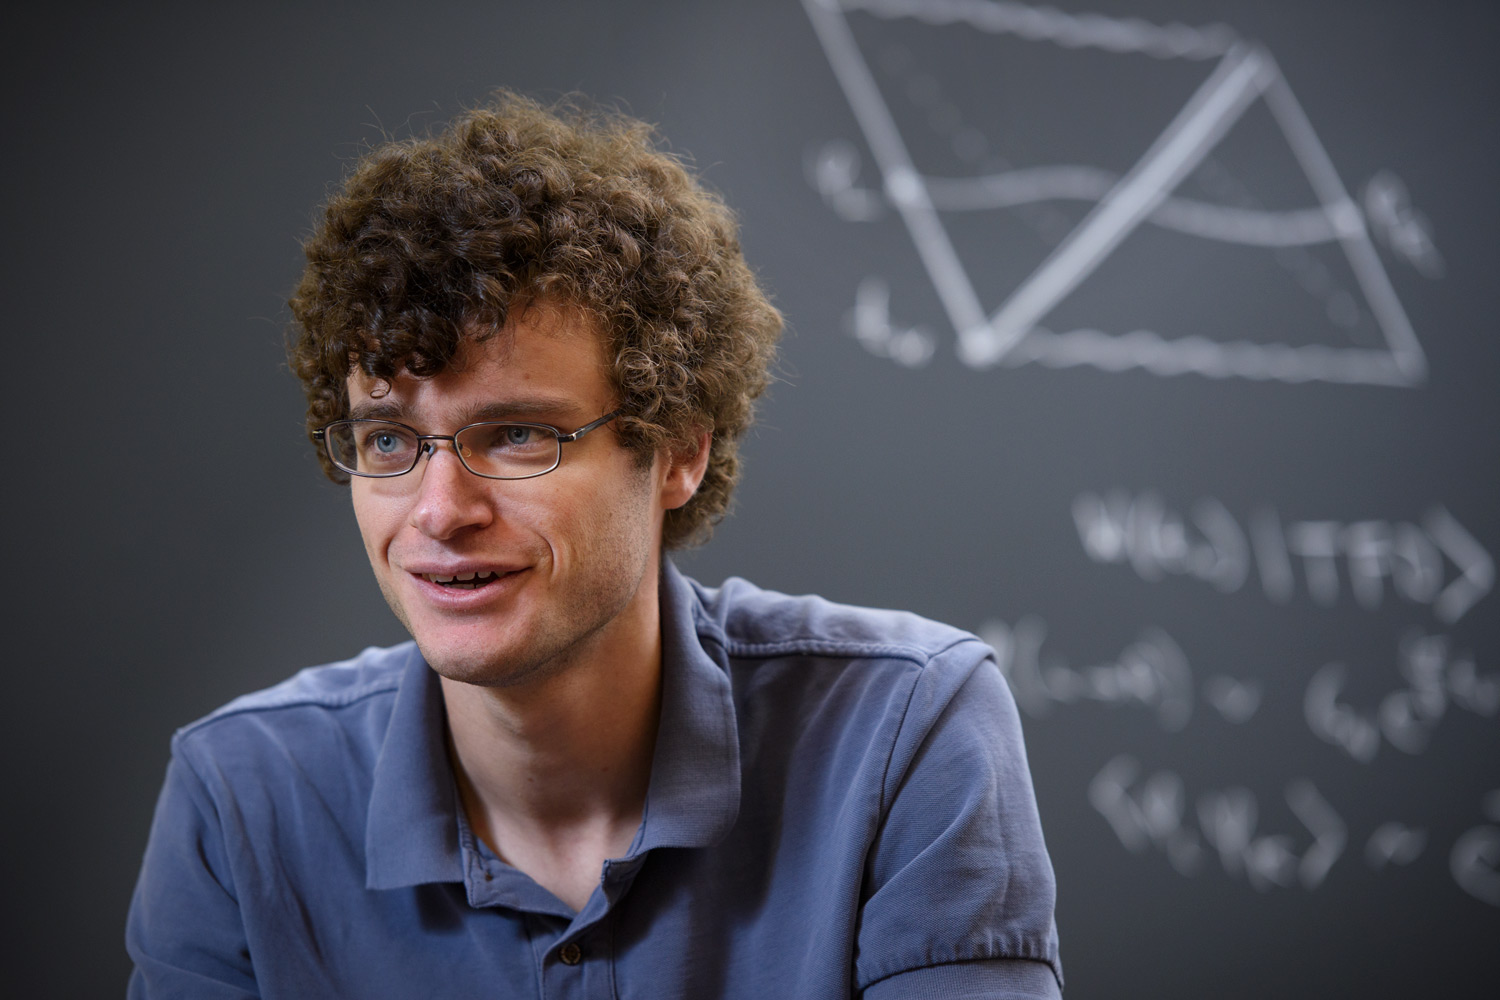 Breakthrough New Horizons Prize winner Douglas Stanford discusses his research using chaos to study the links between black holes and quantum physics.